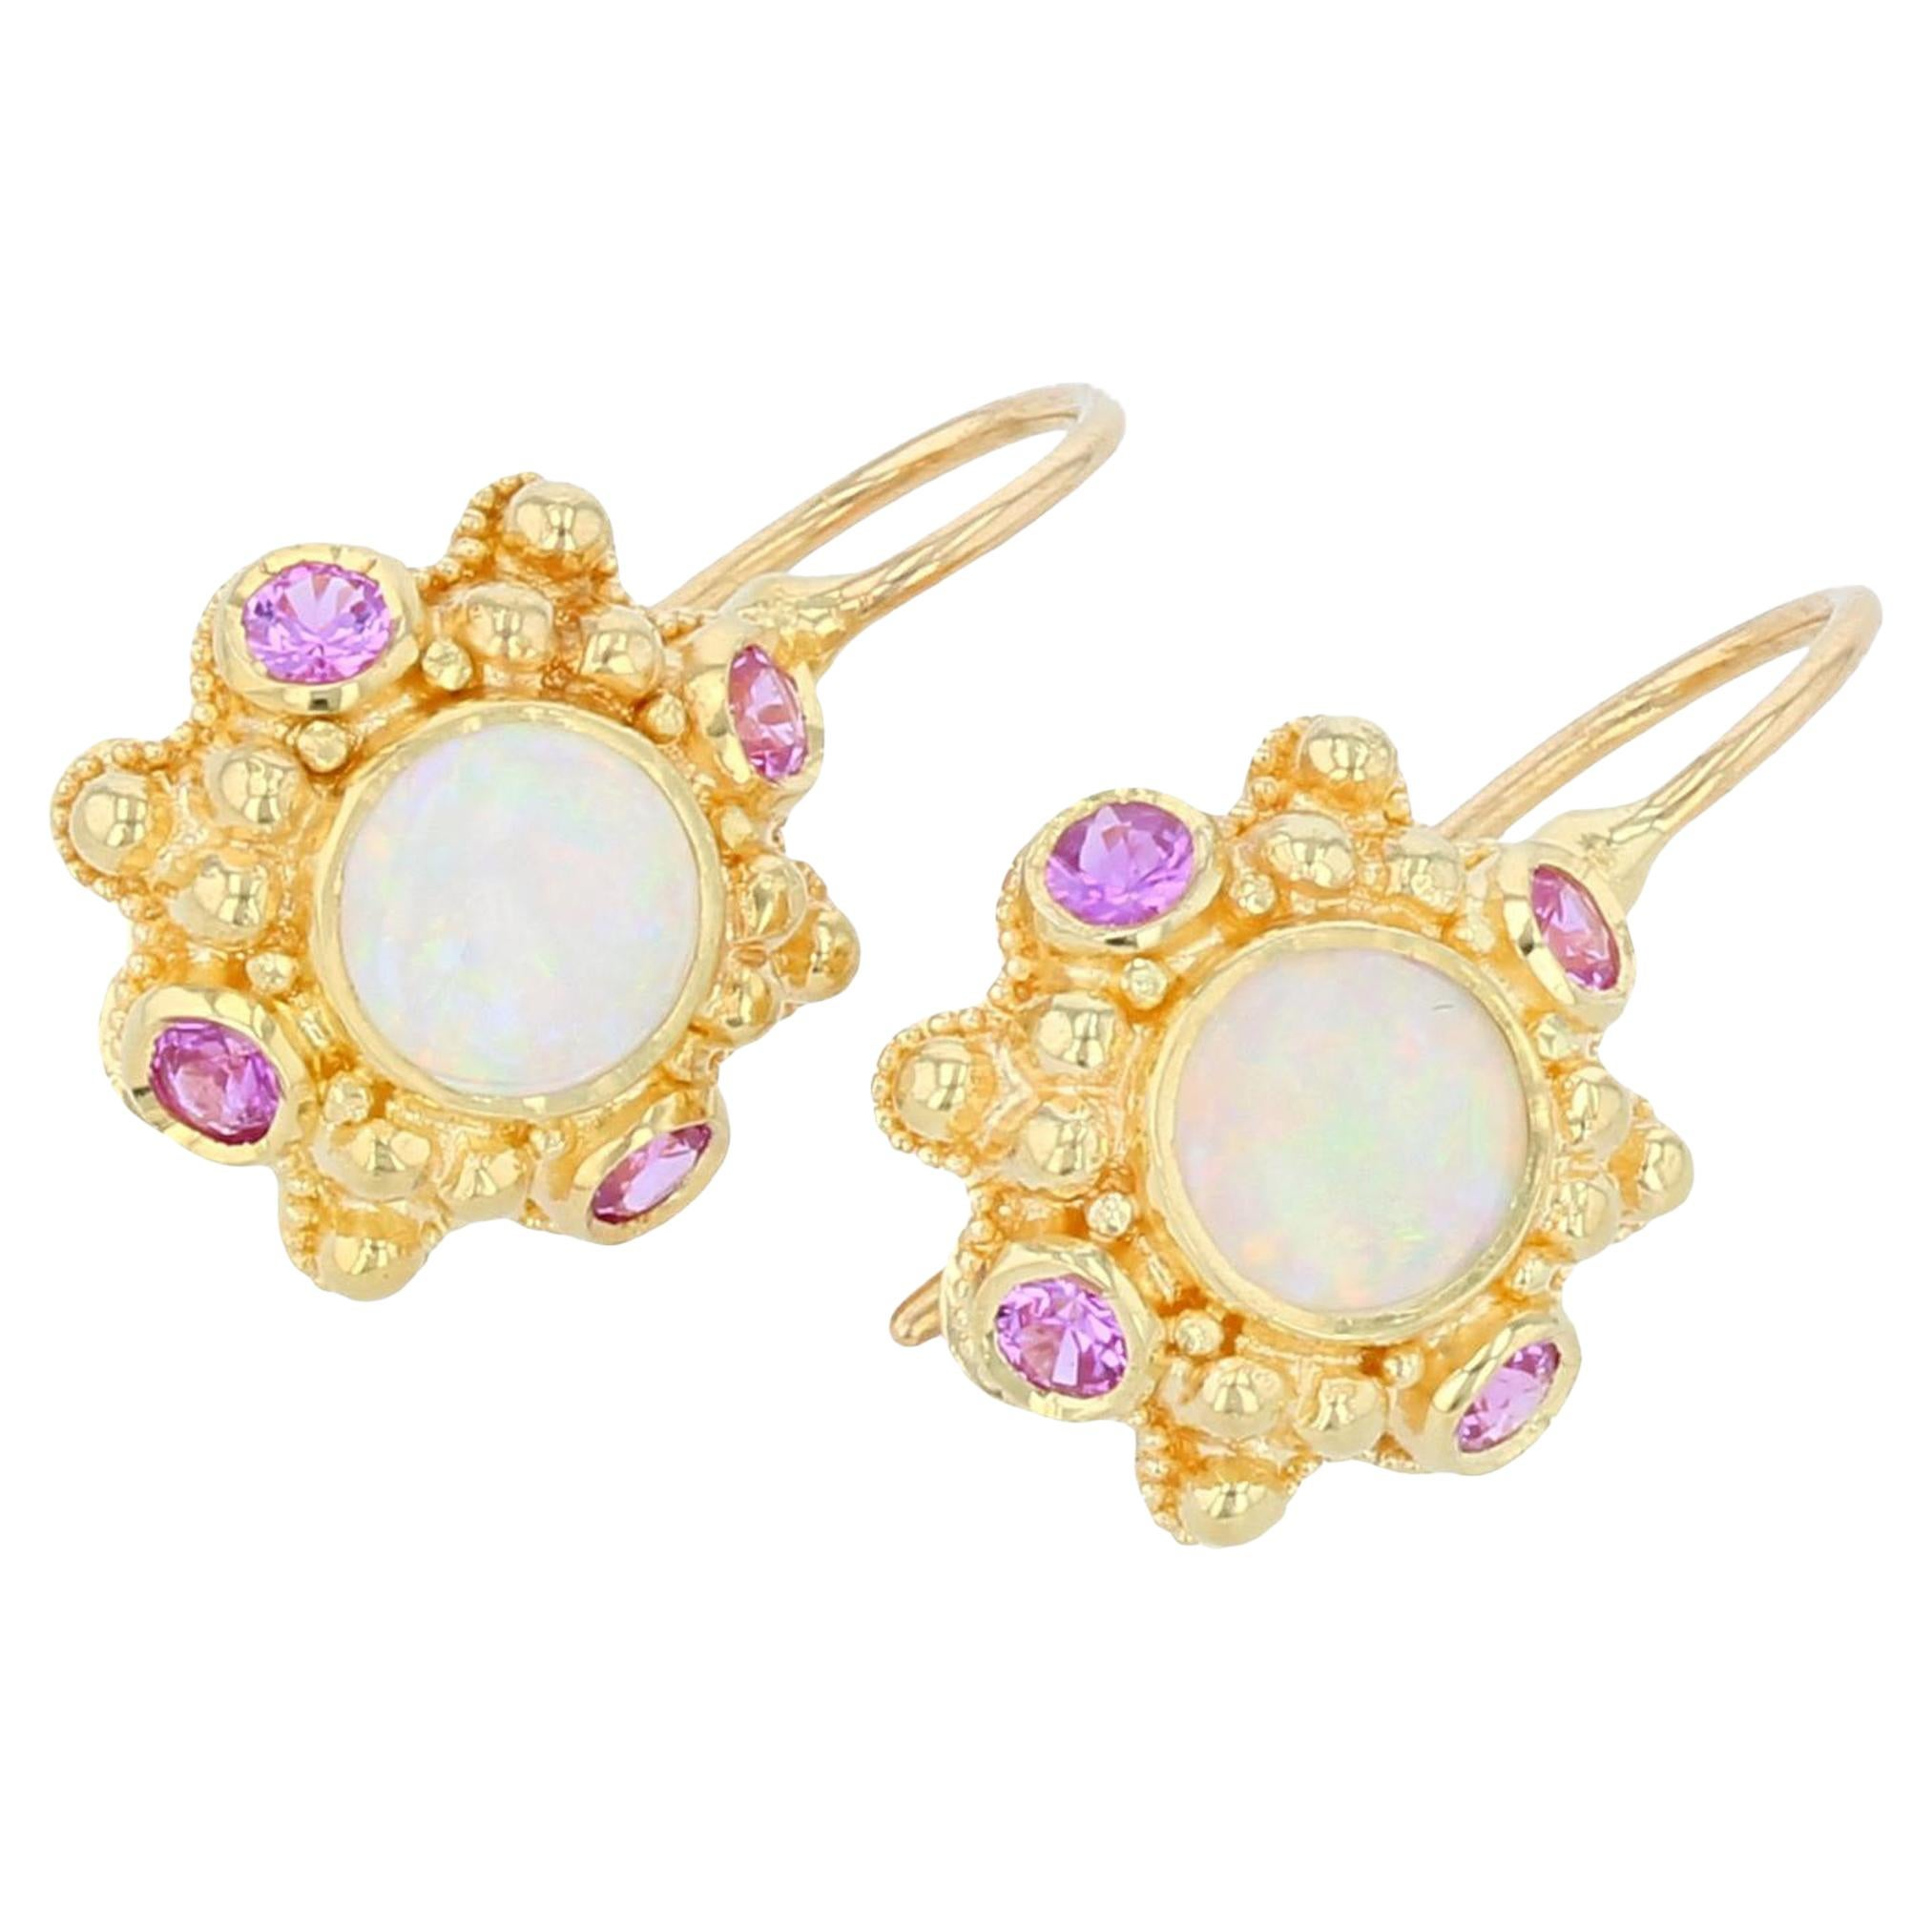 Kent Raible 18 Karat Gold Opal and Pink Sapphire Drop Earrings with Granulation